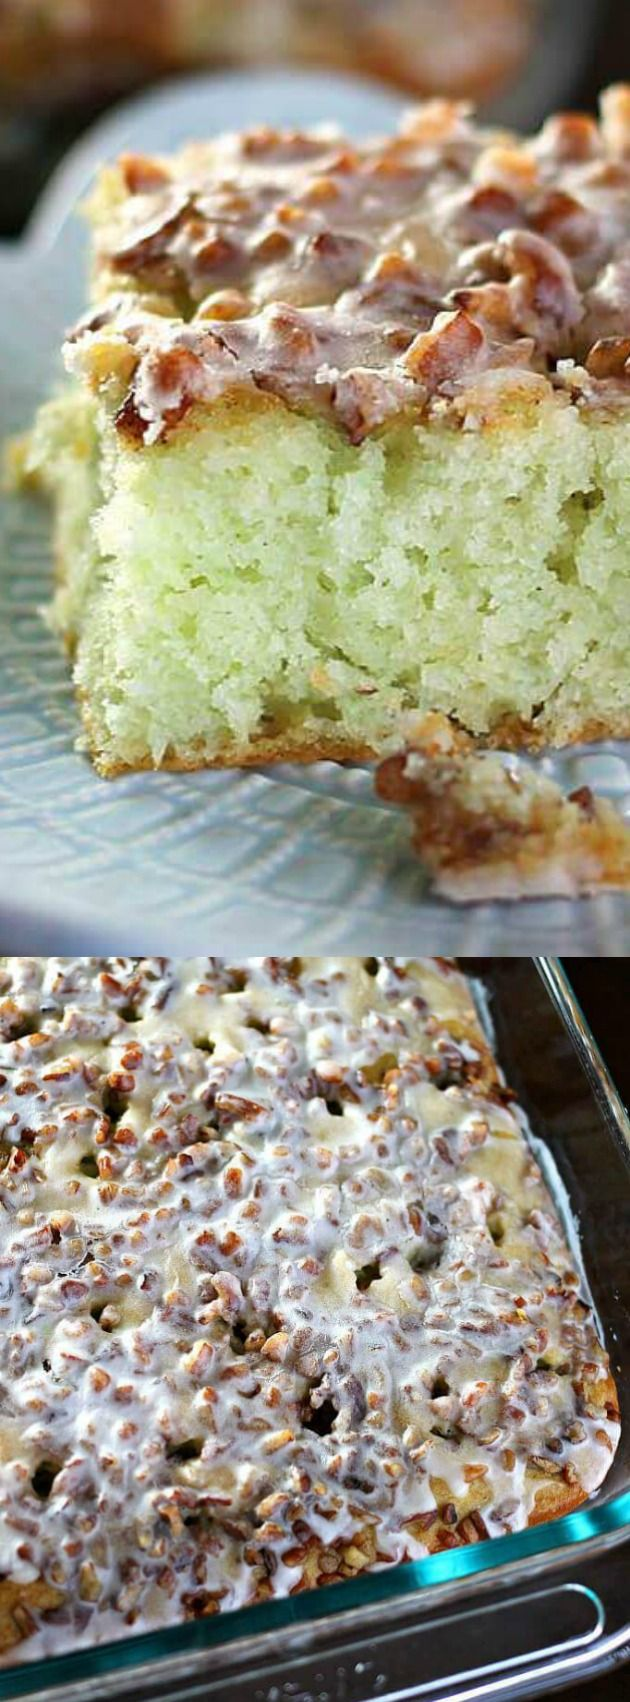 This Pistachio Poke Cake recipe from Amanda's Cookin starts with a cake mix and is so incredibly easy and always a crowd pleaser! It's topped with pecans and filled with delicious pistachio pudding that makes this cake simple — yet irresistible!